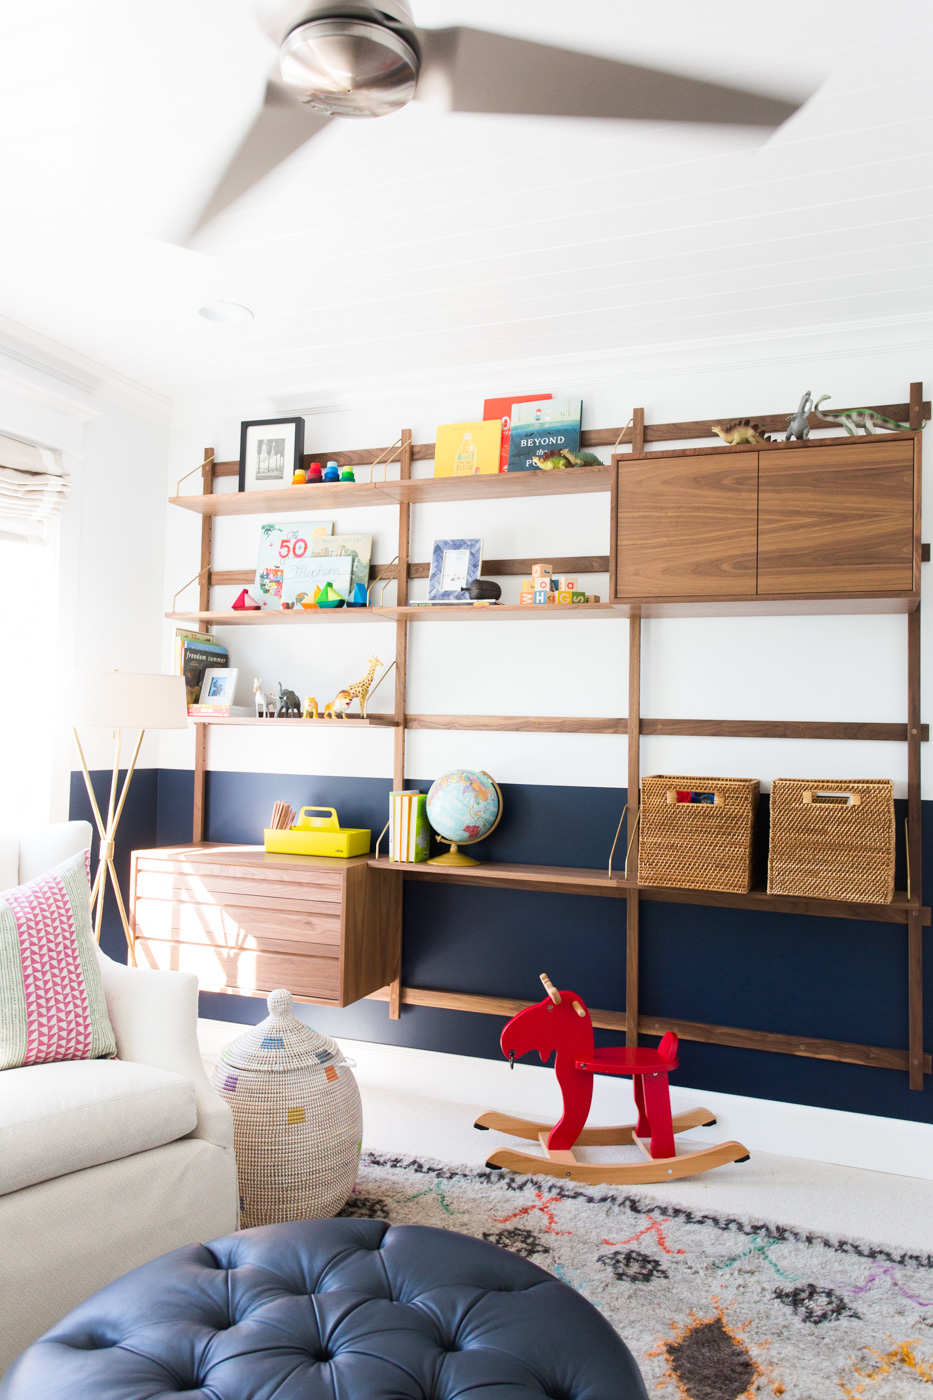 Kid space decorated with toys, books, and stuffed animals